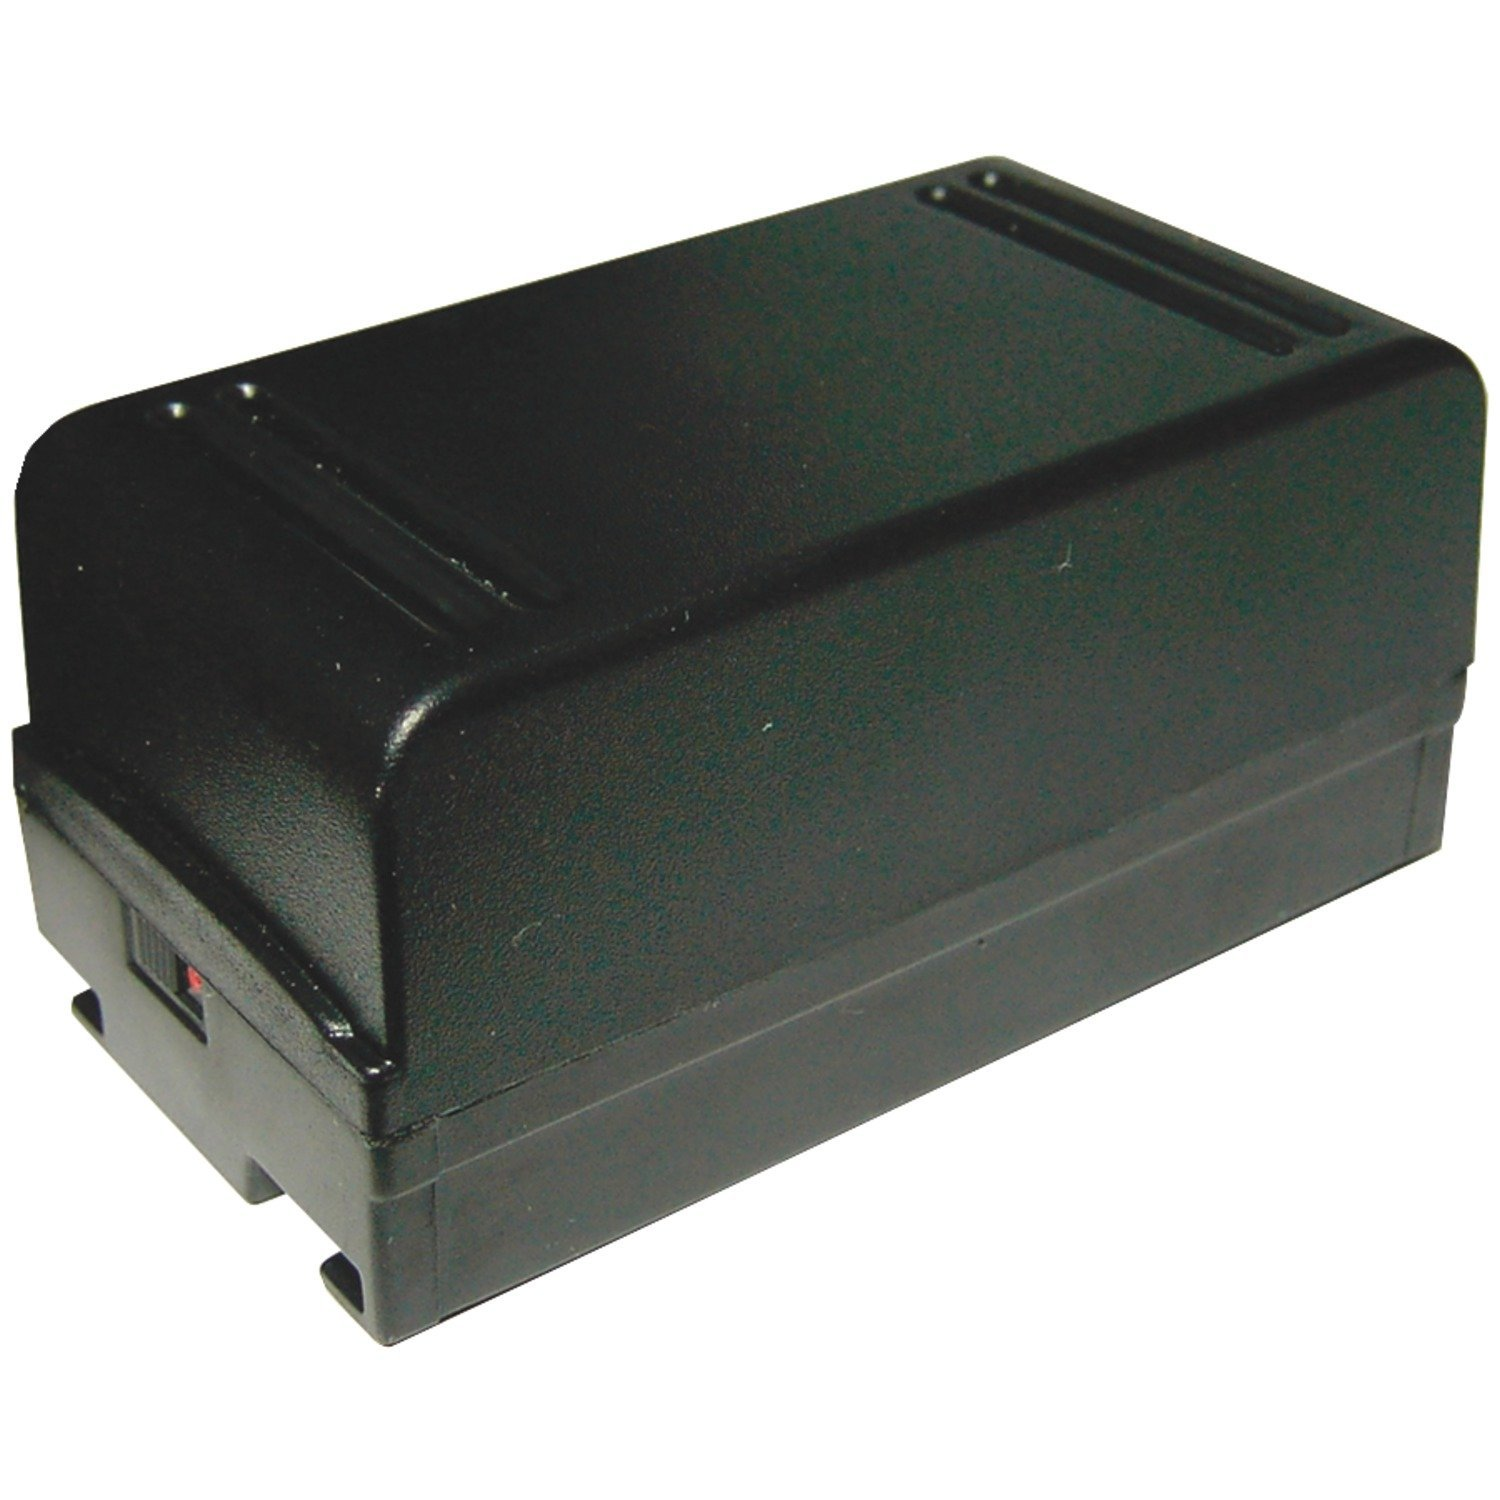 Cheap Fd 200, find Fd 200 deals on line at Alibaba com